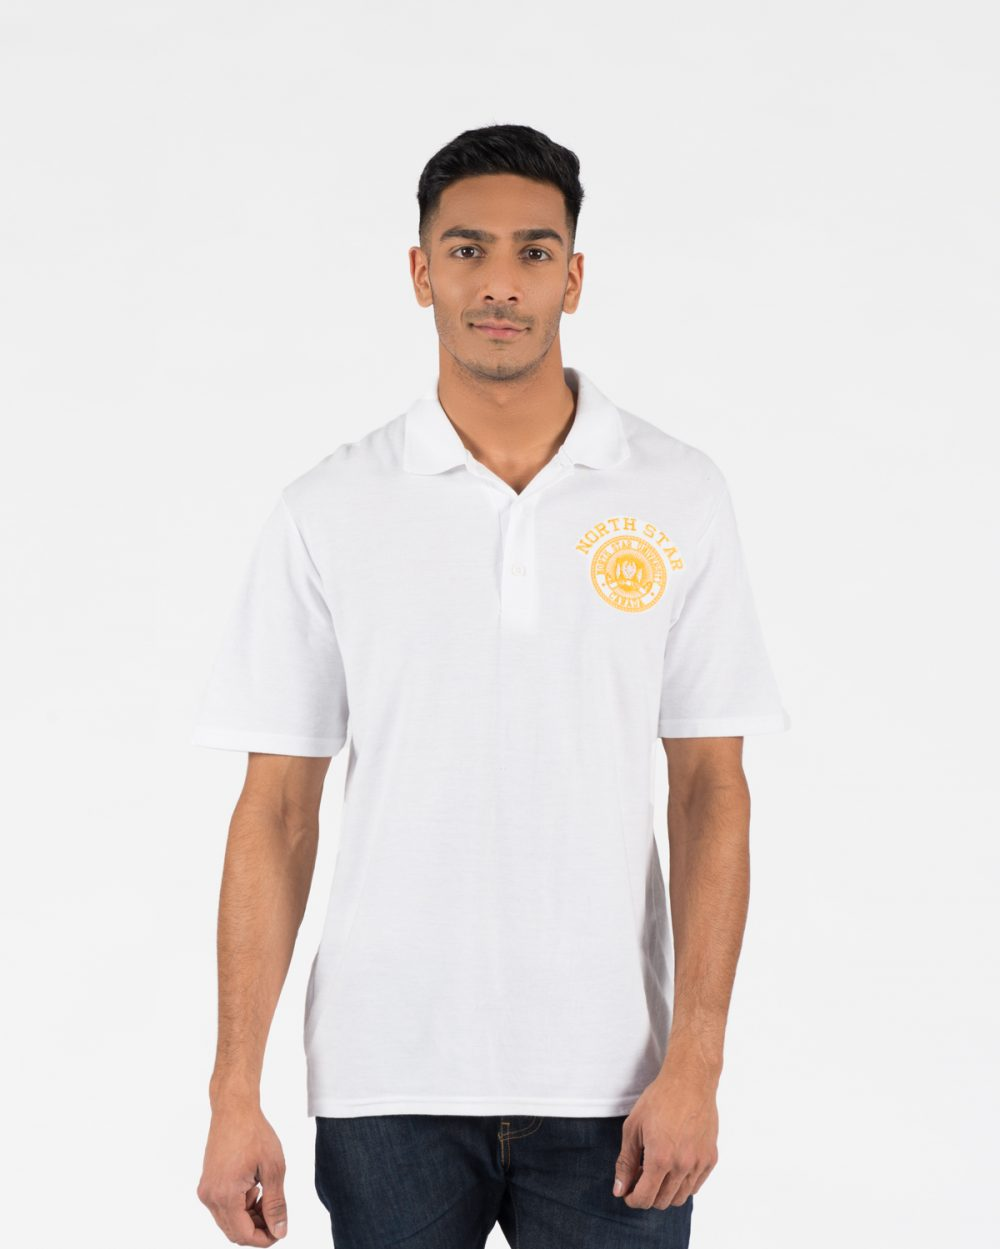 Premium Golf Shirt 108m in white